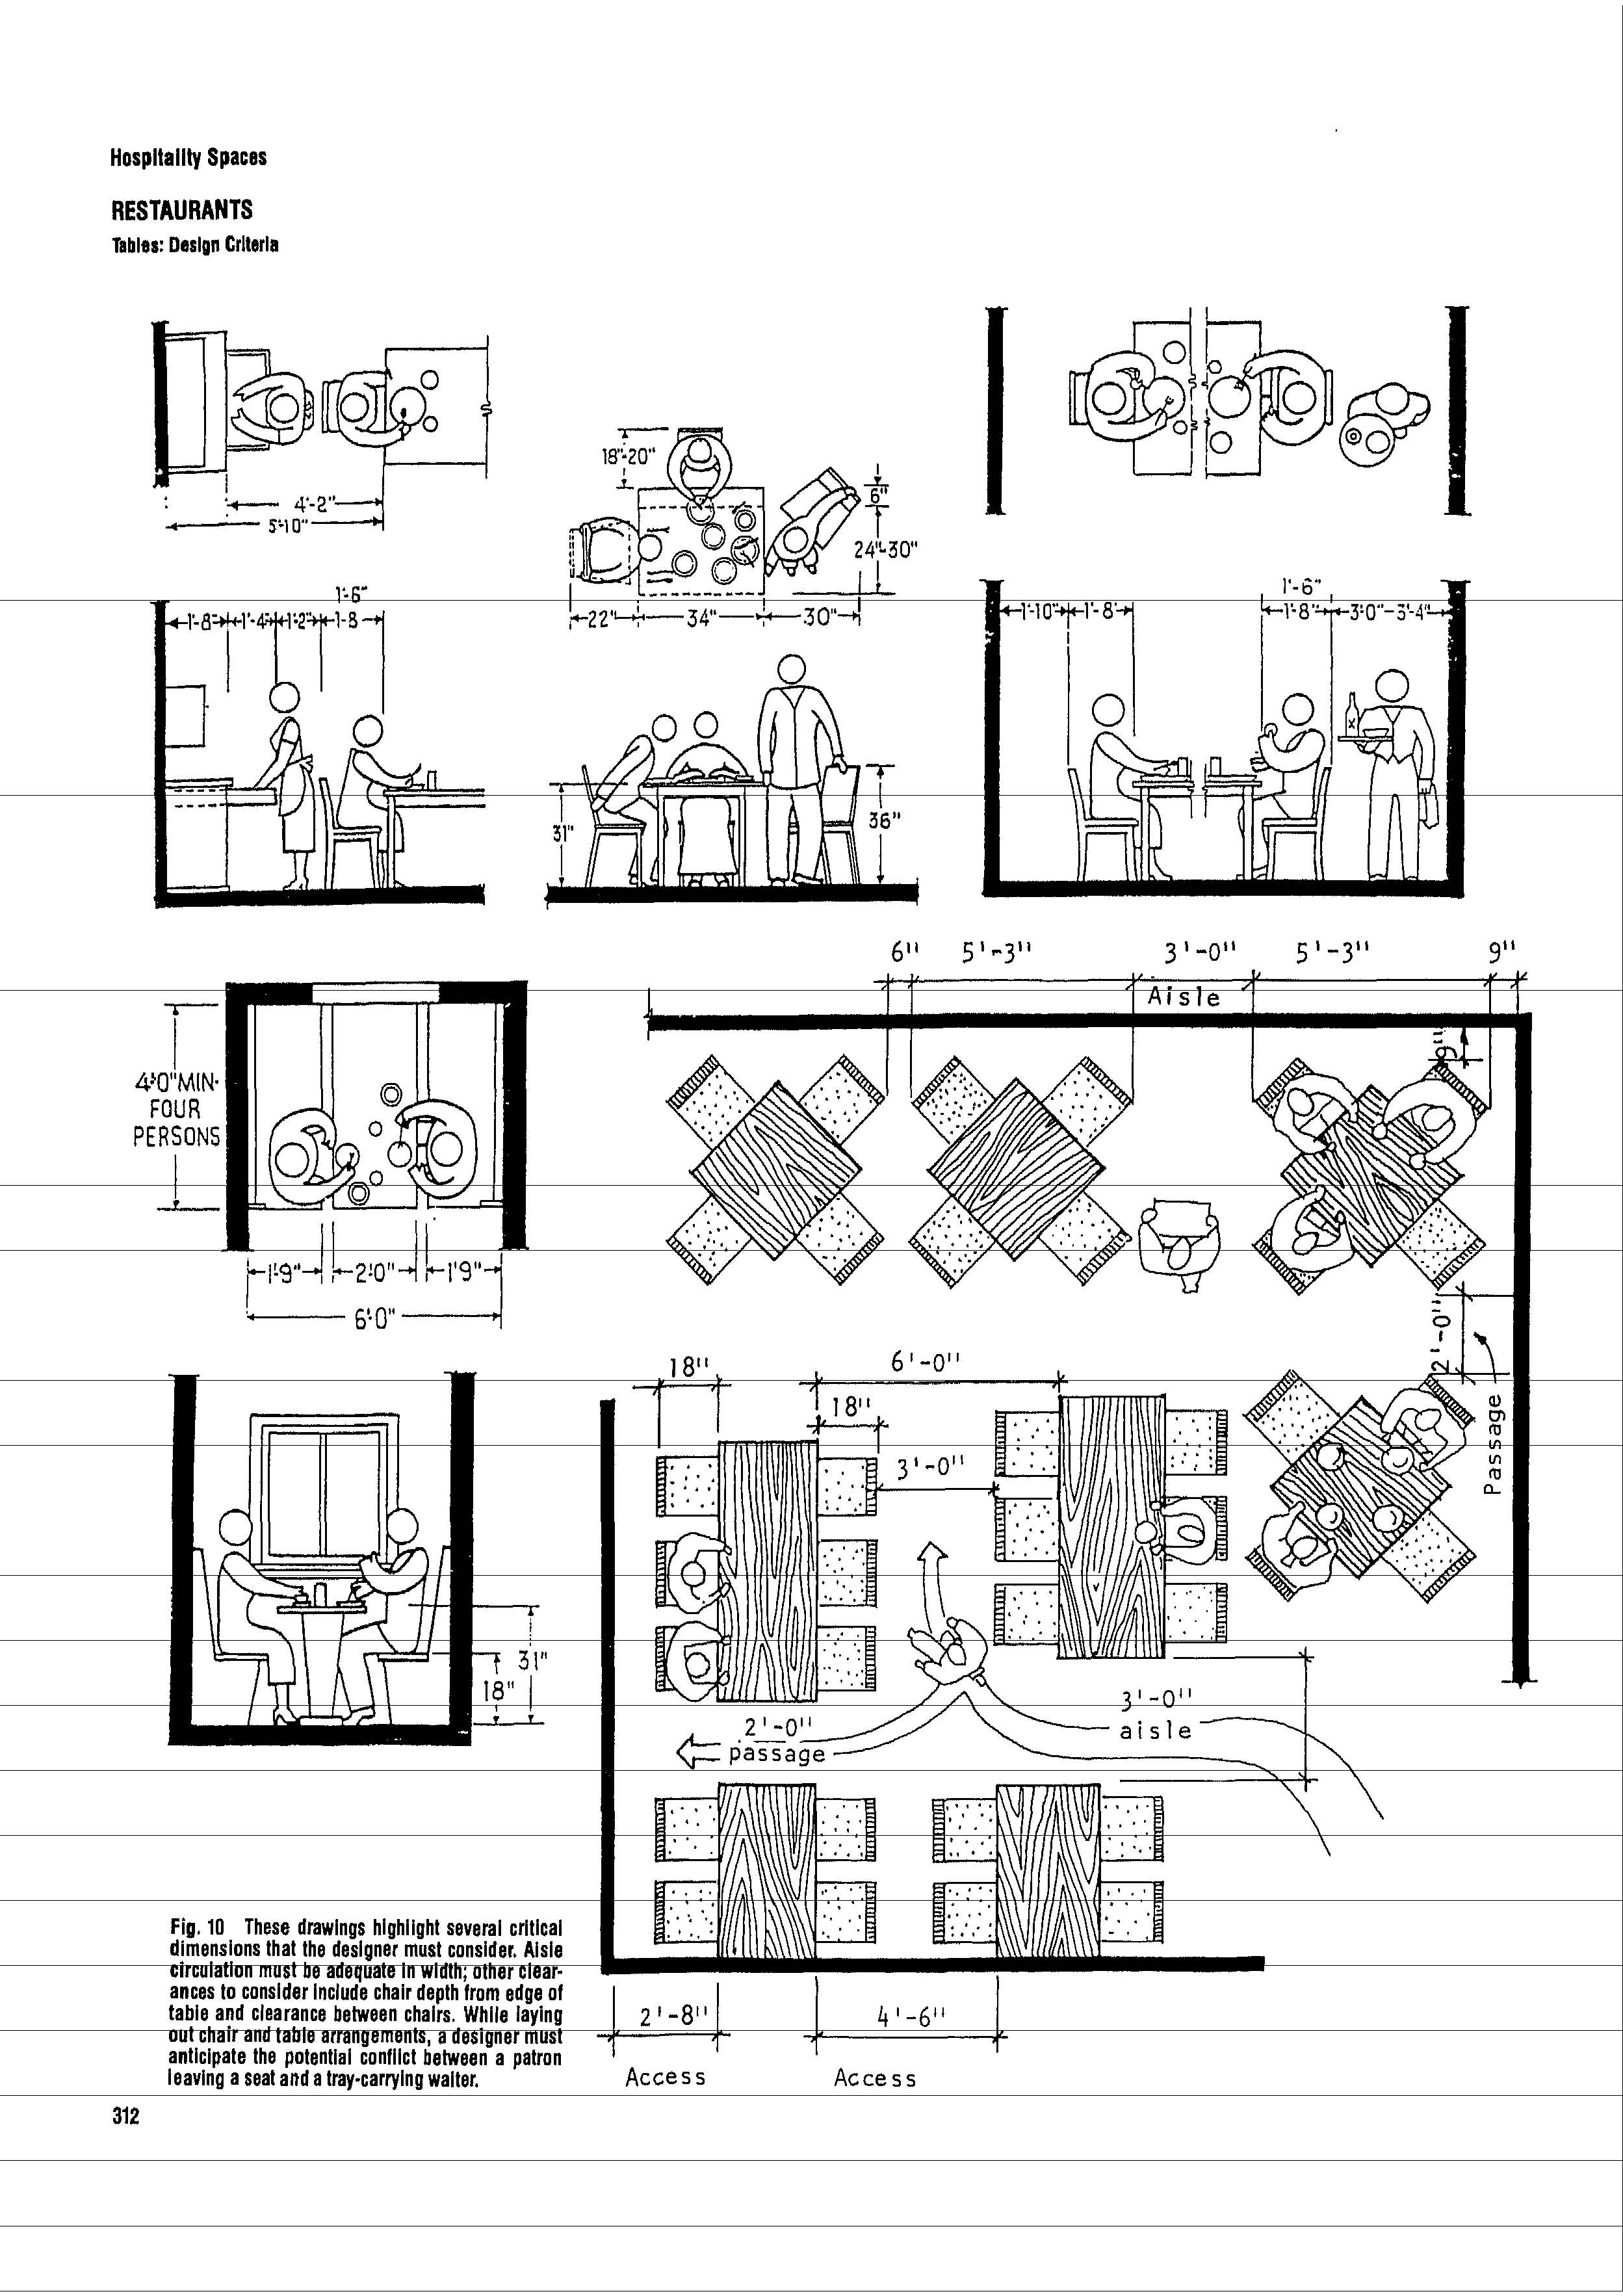 Restaurant kitchen layout dimensions pdf